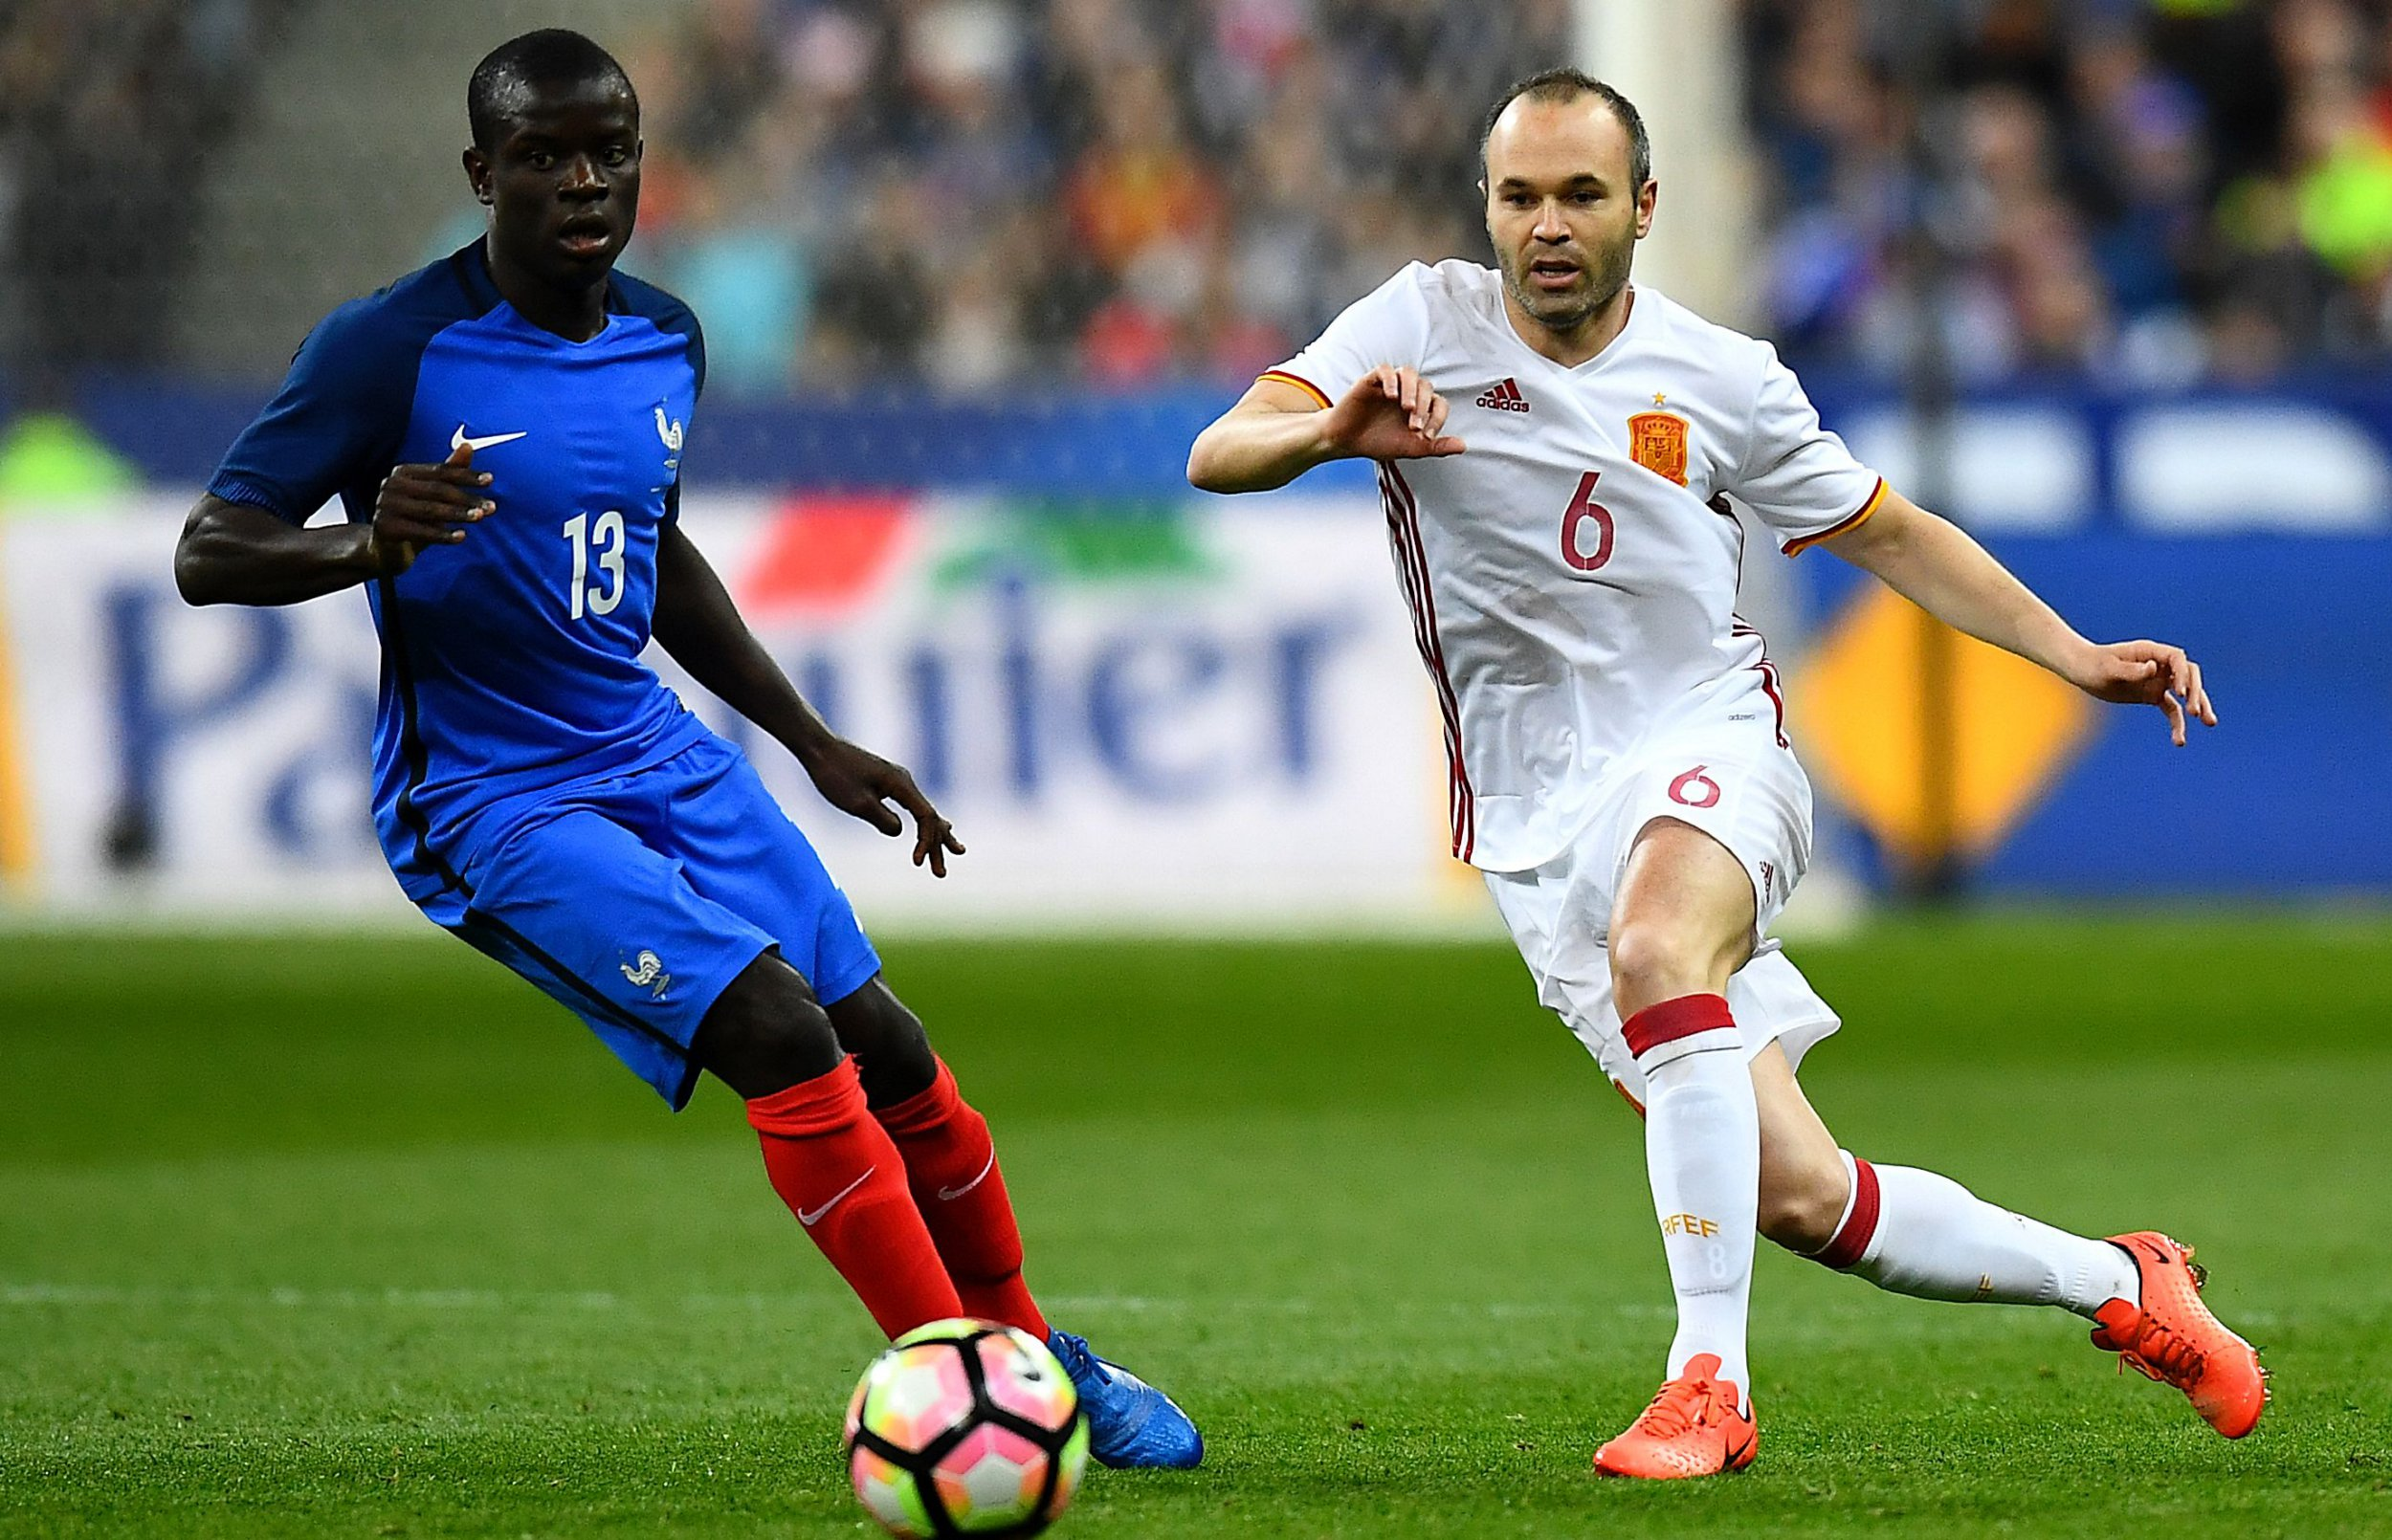 N'Golo Kante called 'redundant' as Chelsea star struggles in France's defeat to Spain